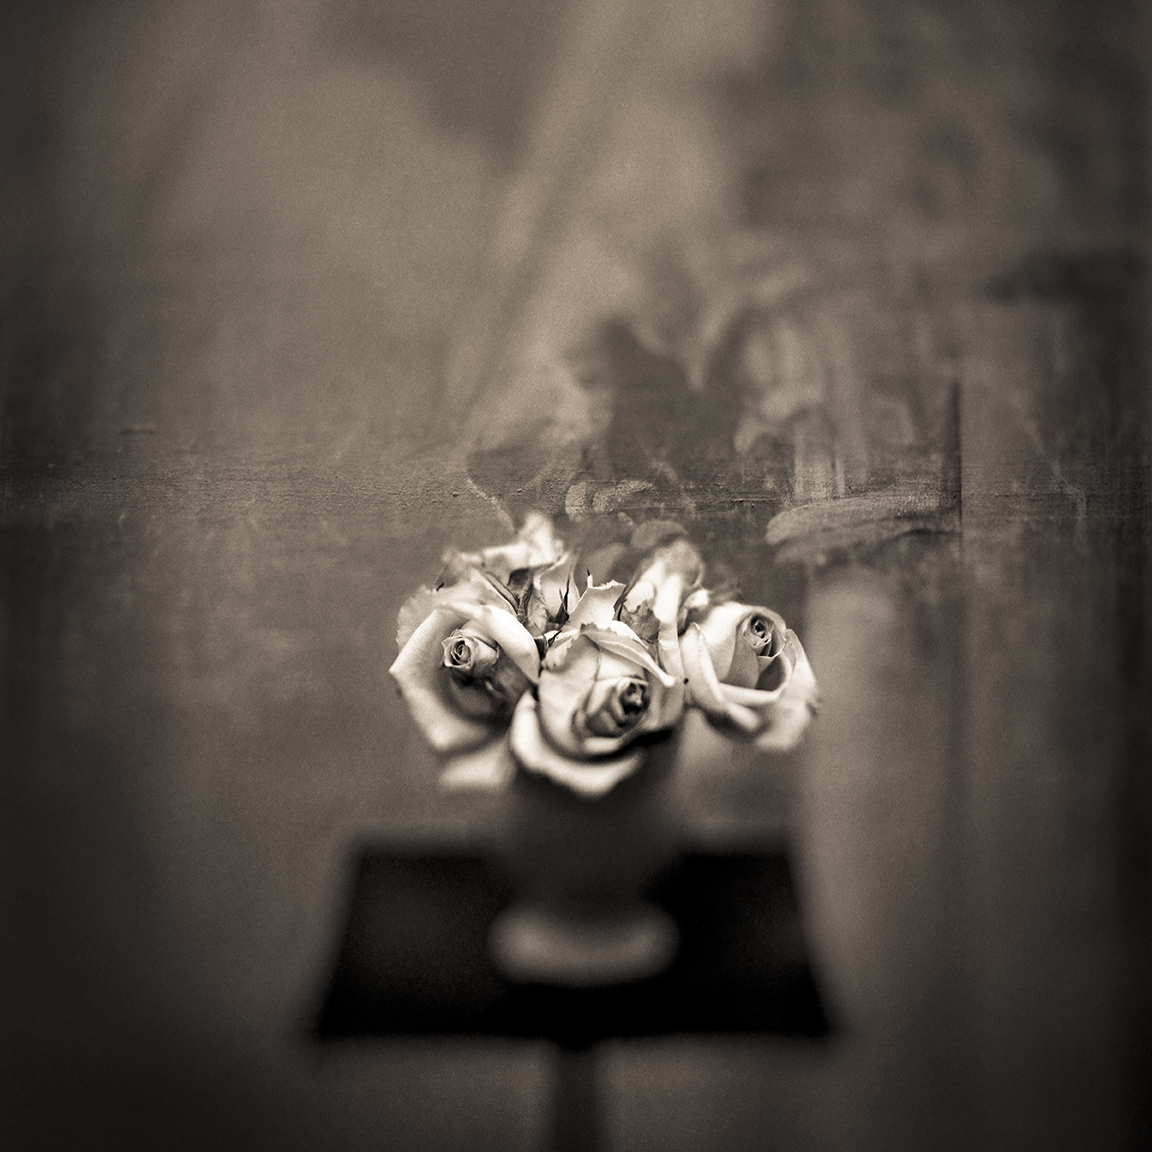 Keith Carter, White Roses, 1998